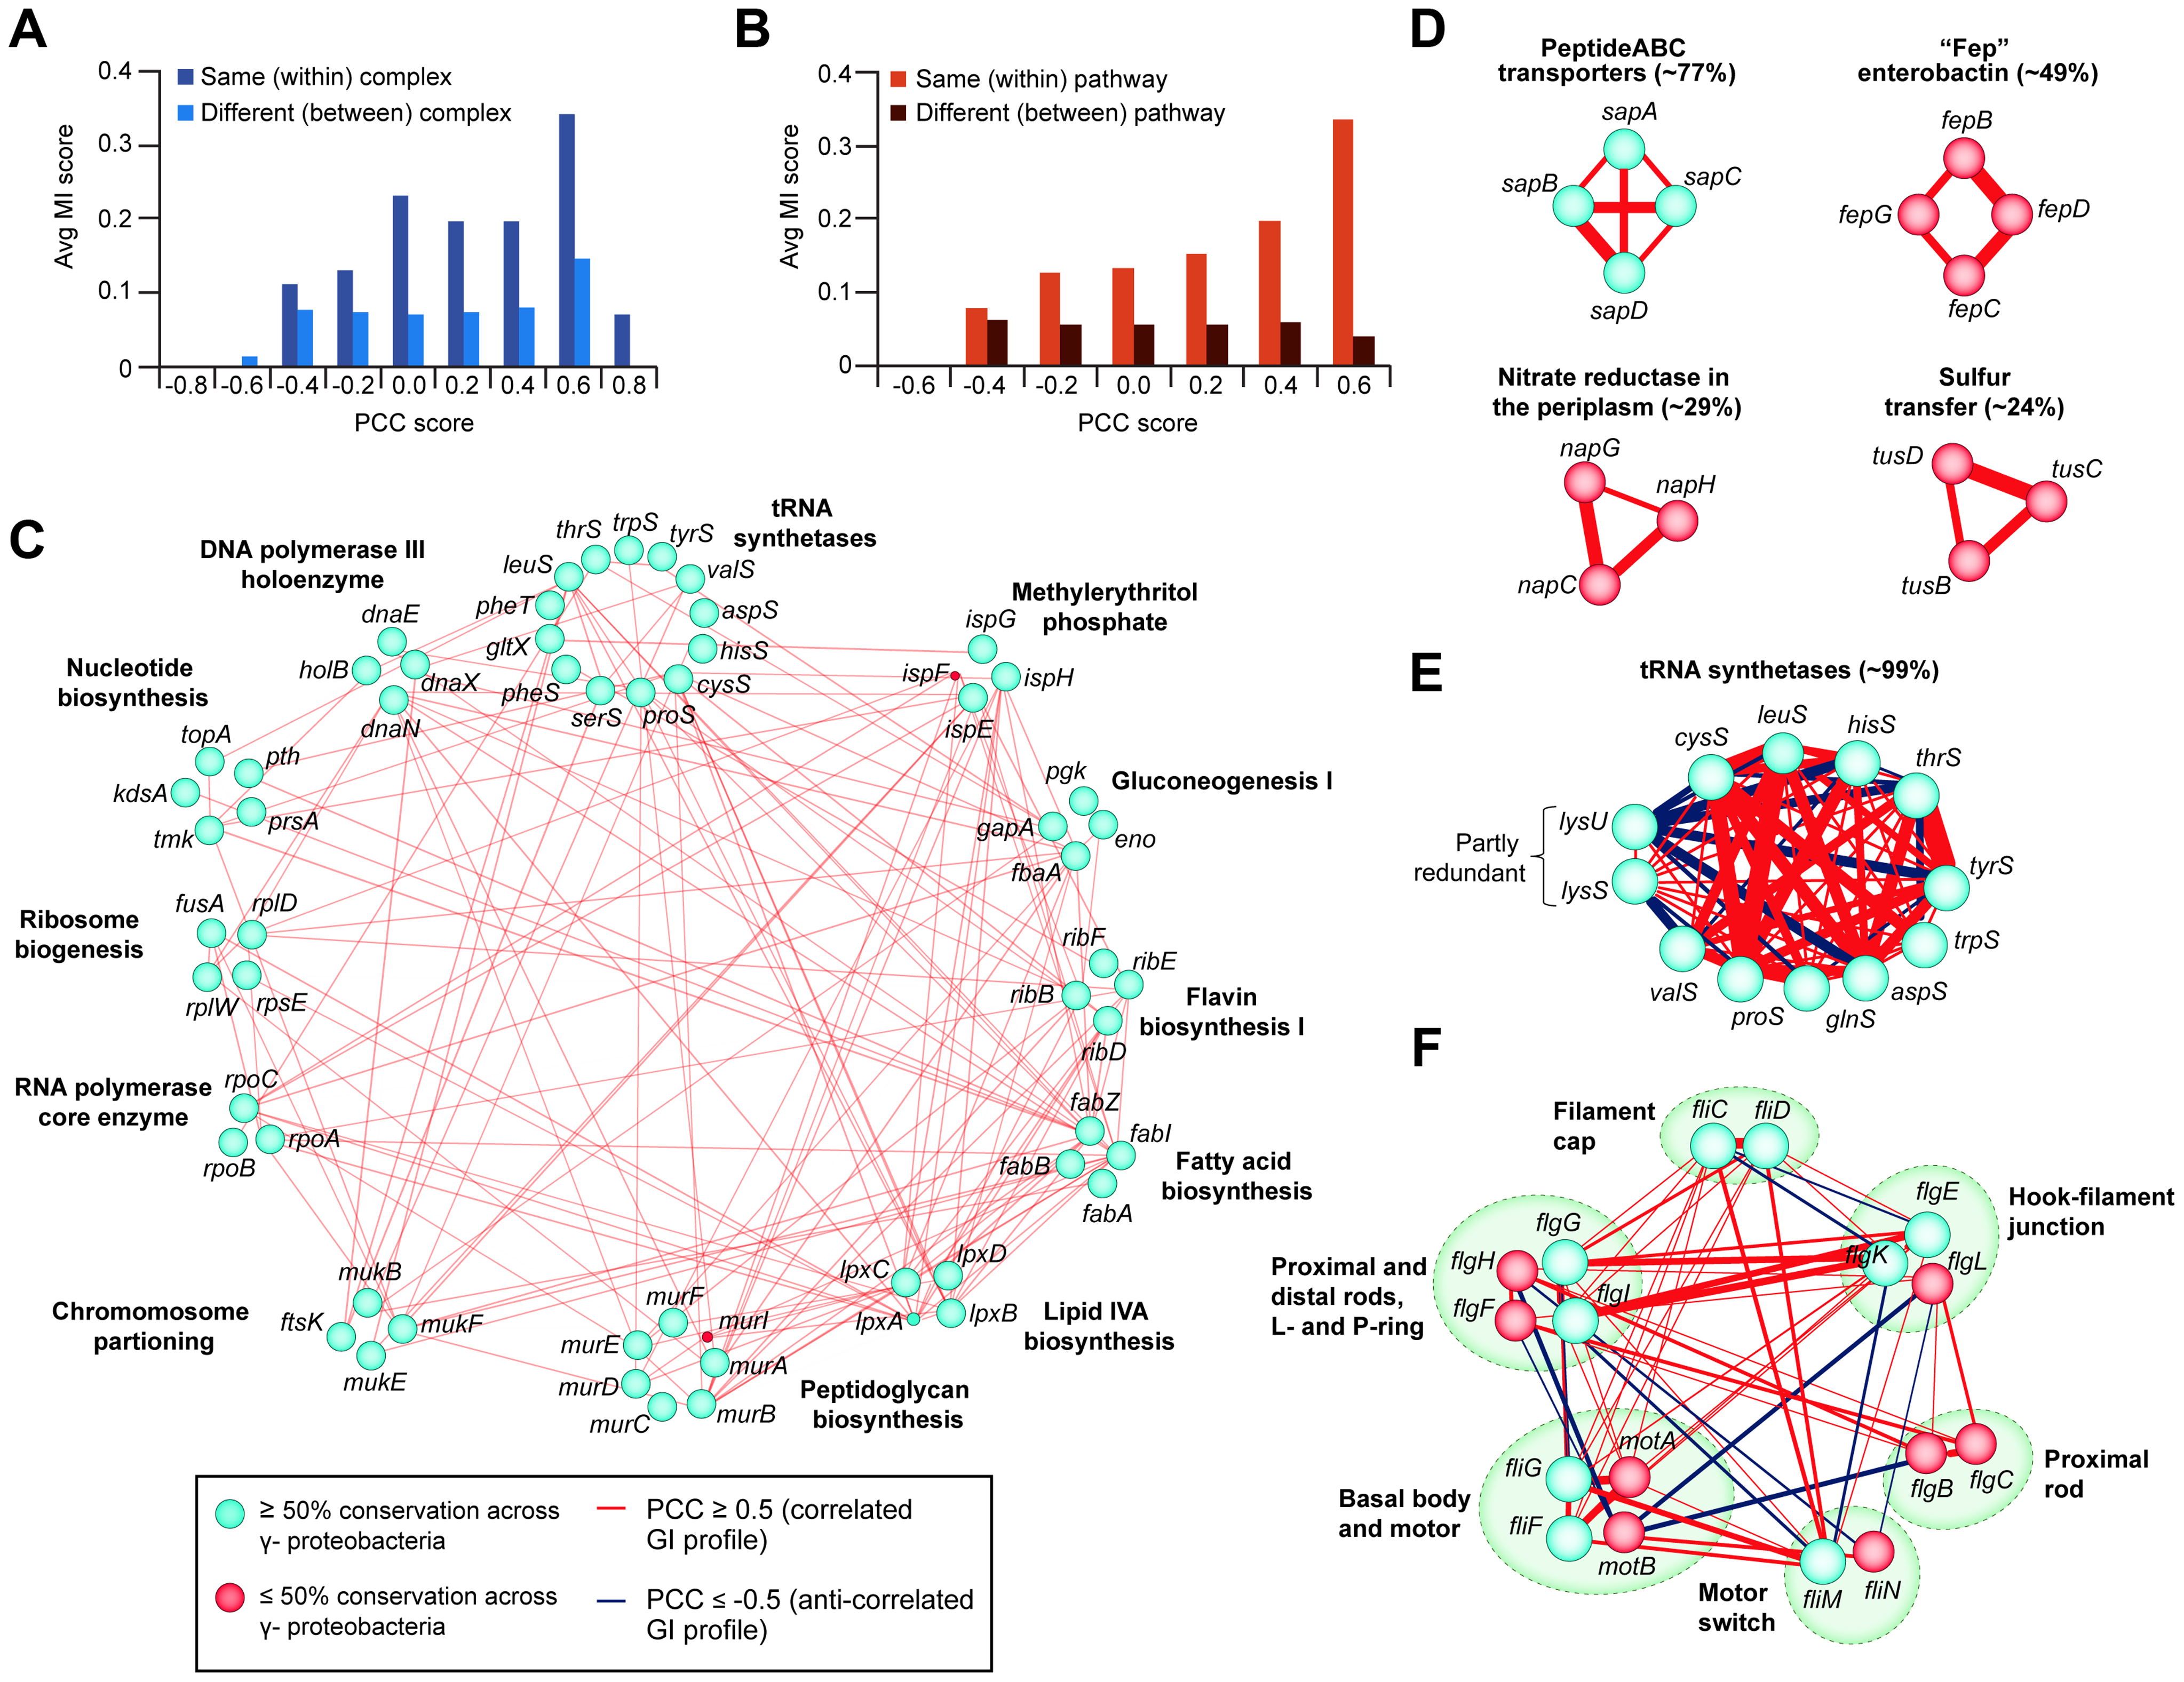 Correlated GI profiles of co-conserved genes and modules.